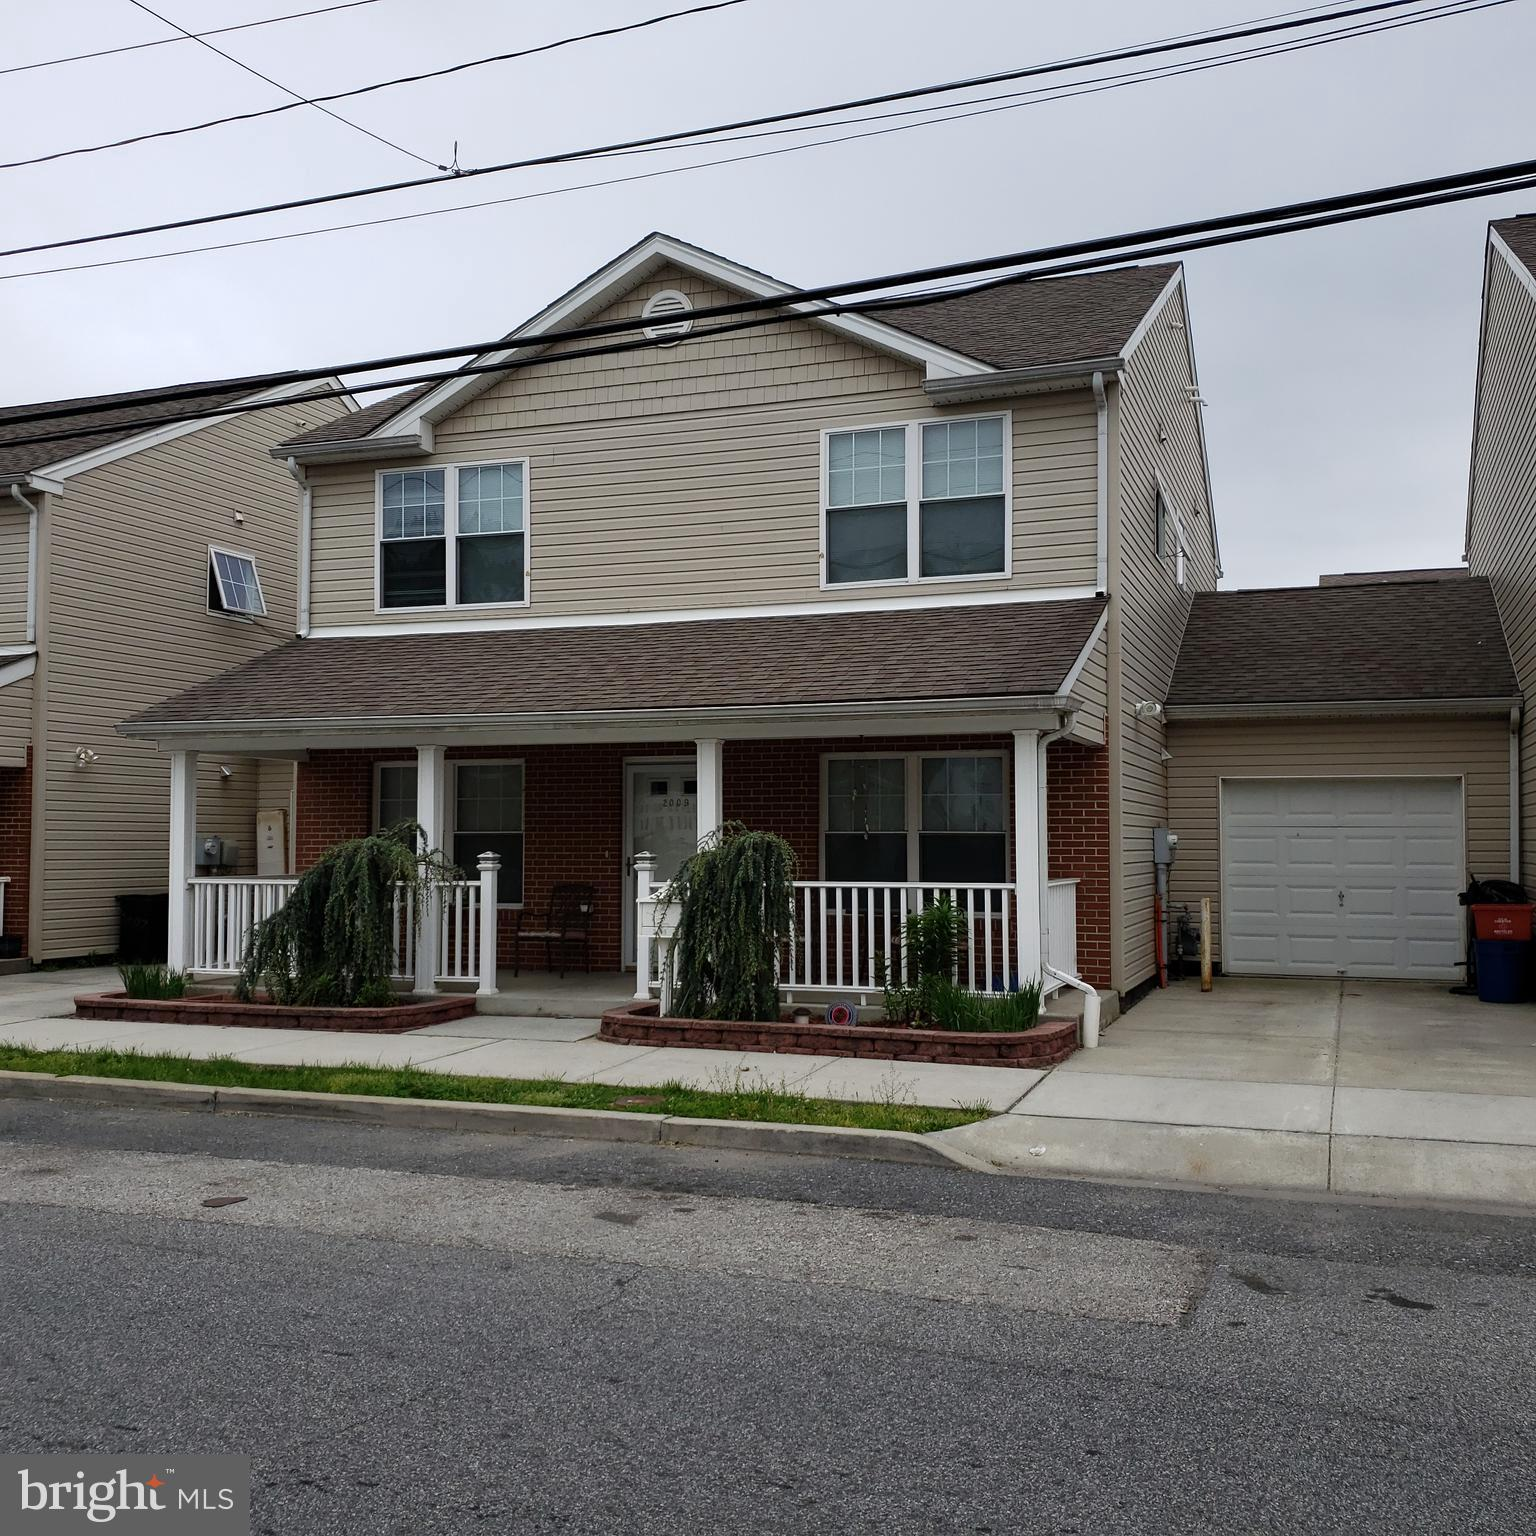 2009 W 4TH STREET, CHESTER, PA 19013